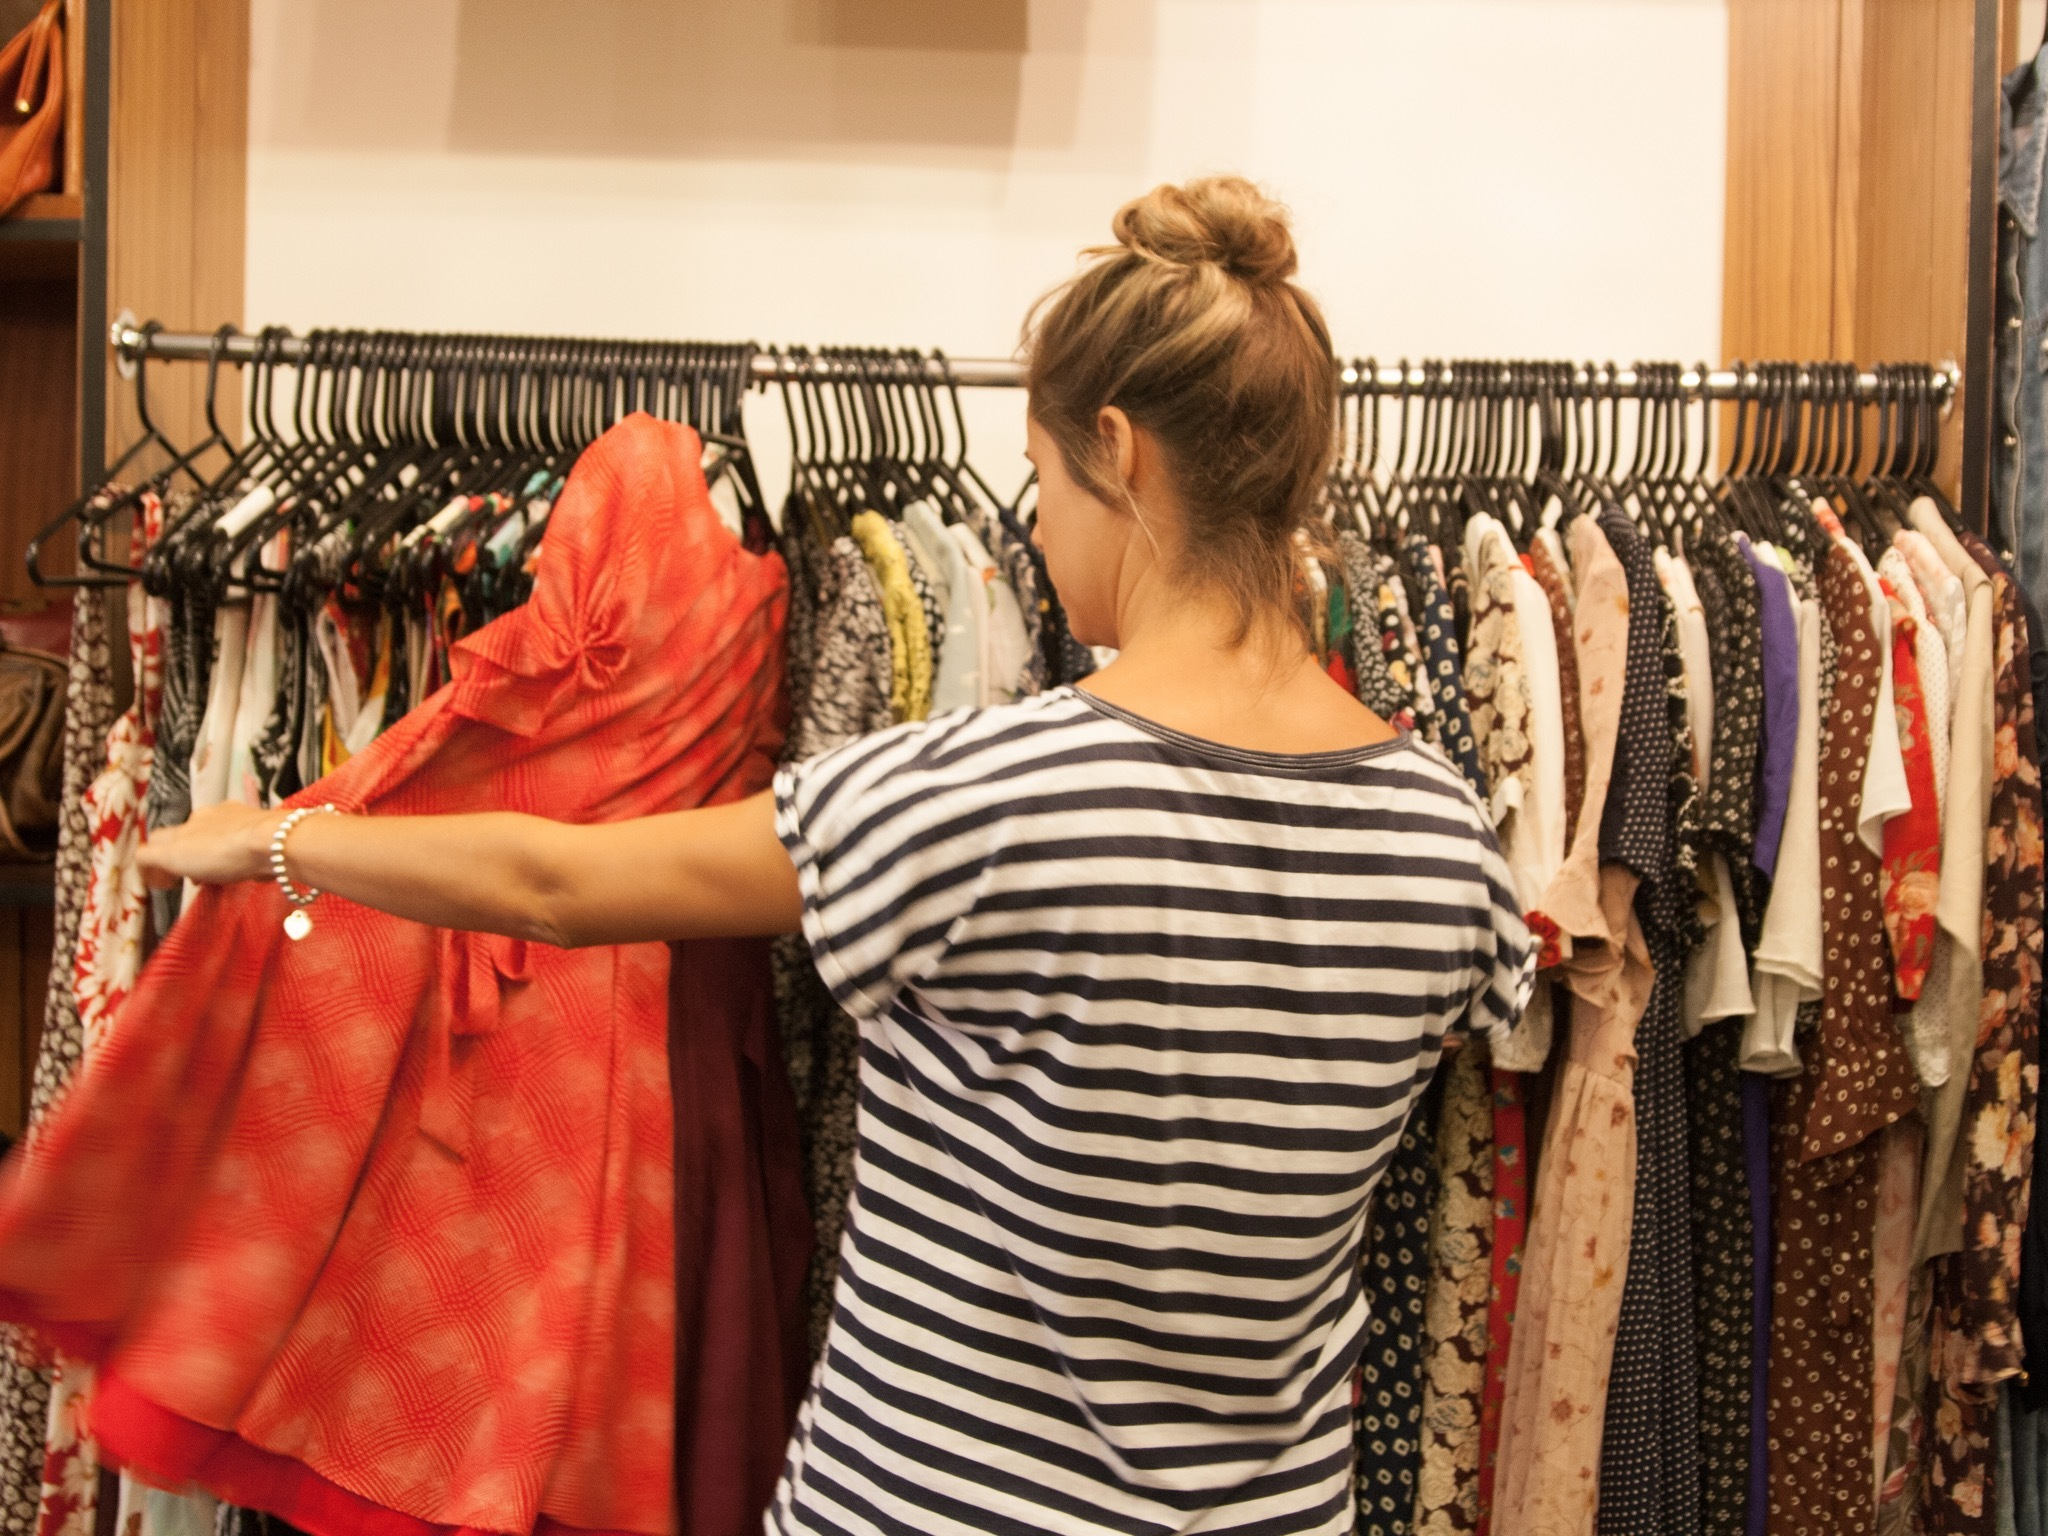 A shot of a woman browsing through clothes on a rack